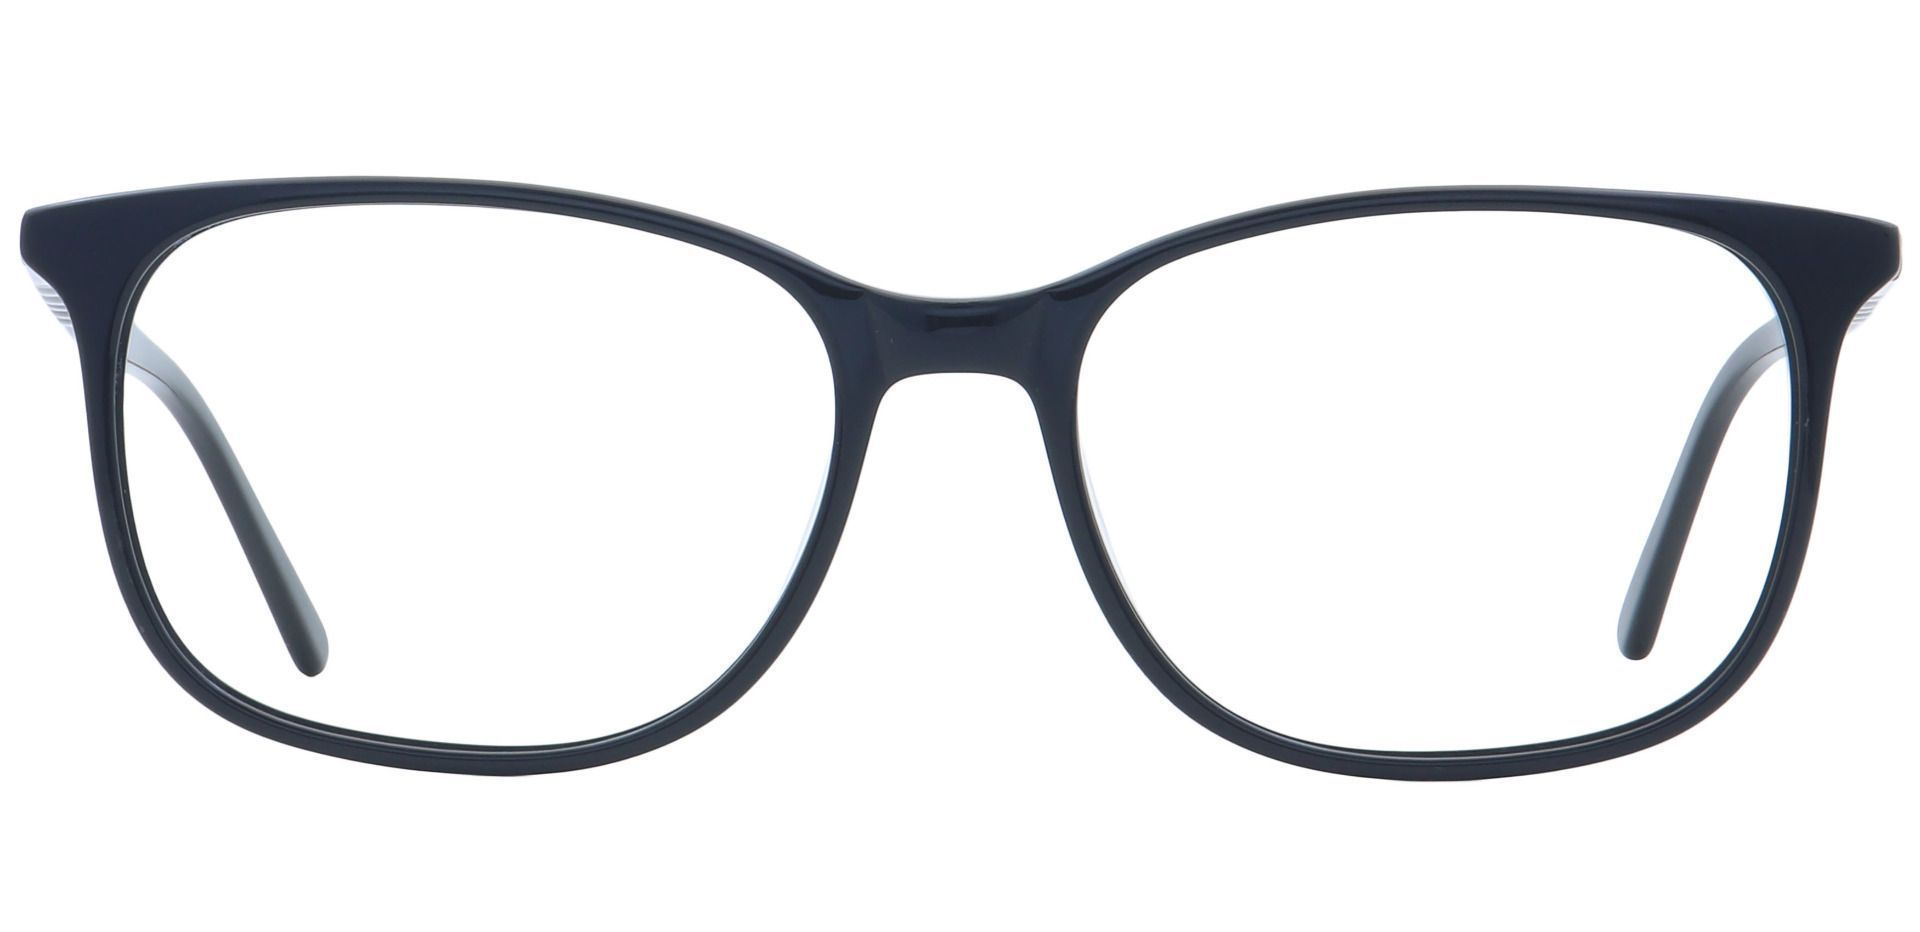 Mason Square Lined Bifocal Glasses - Black